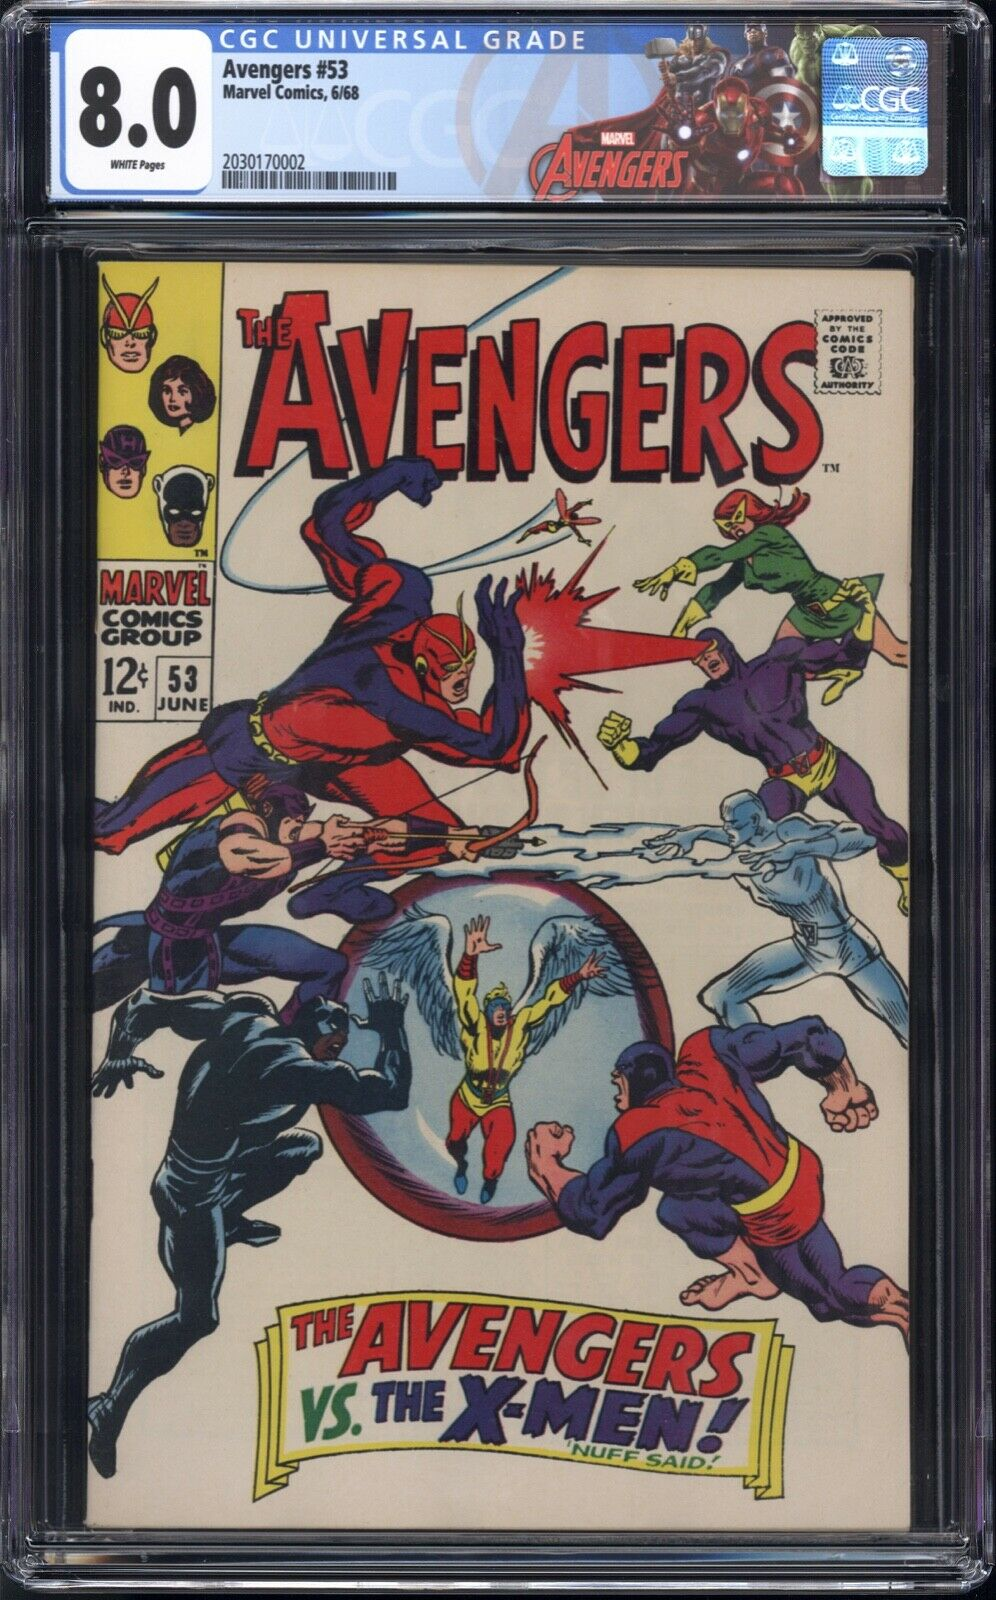 Avengers #53 CGC 8.0 White pages X-Men vs Avengers New CGC Avengers label